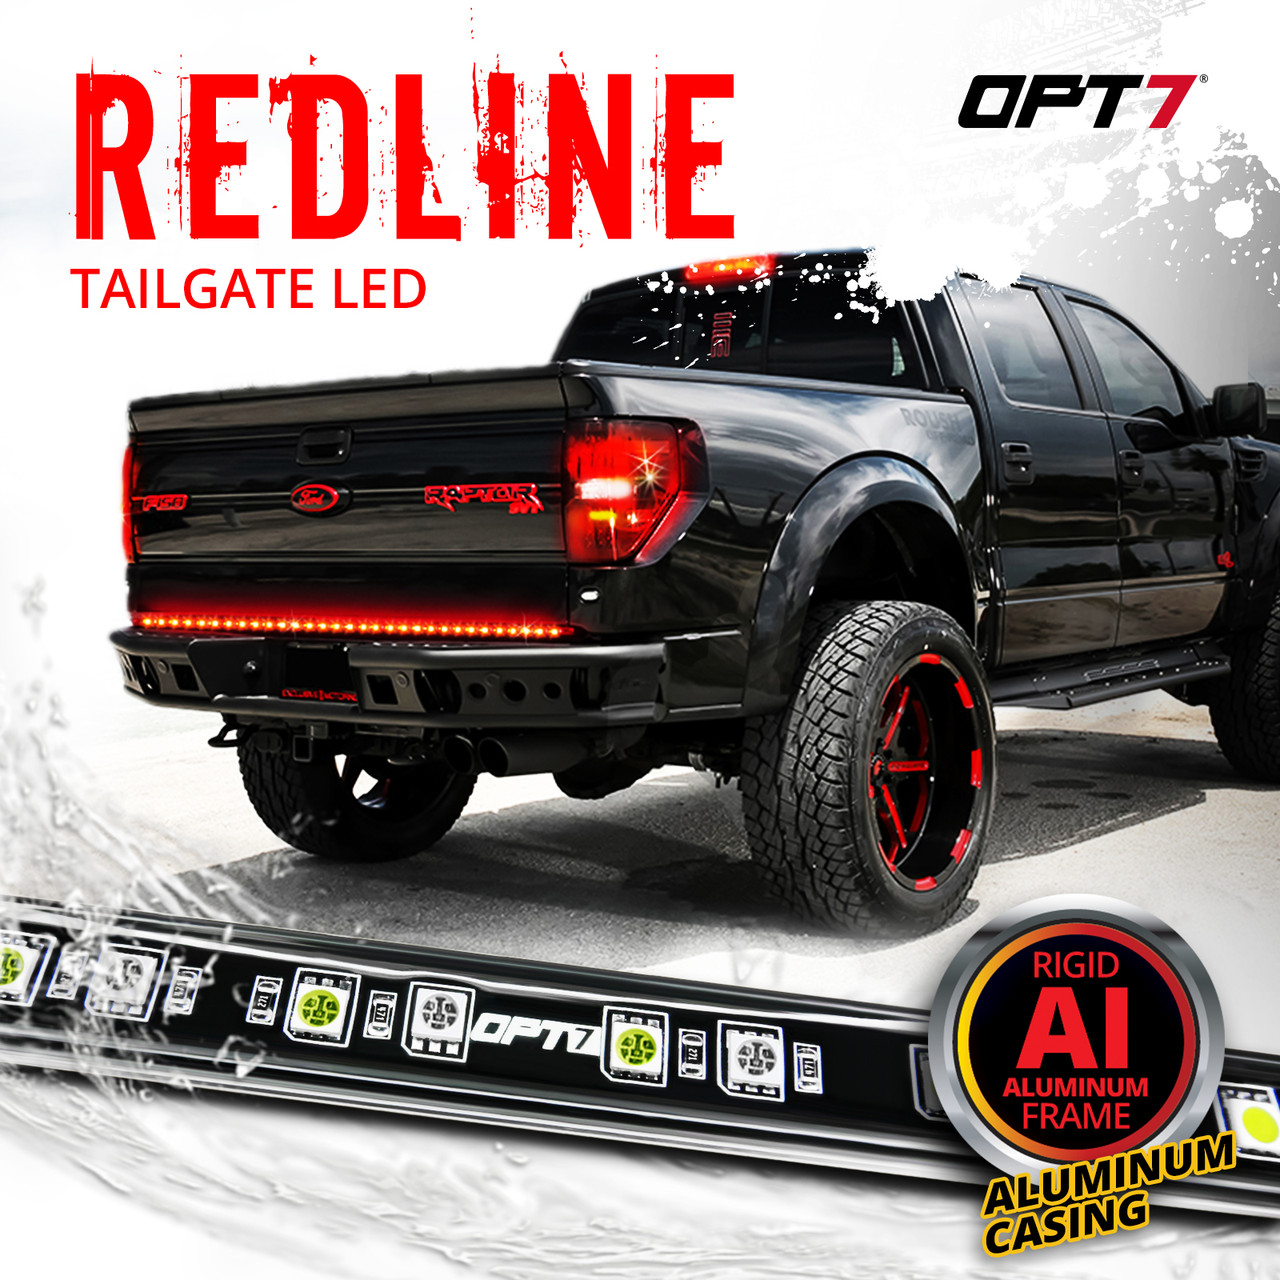 [DIAGRAM_5LK]  Redline LED Tailgate Brake Light Bar with Reverse | Led Light Bar Wiring Diagram For Truck |  | OPT7